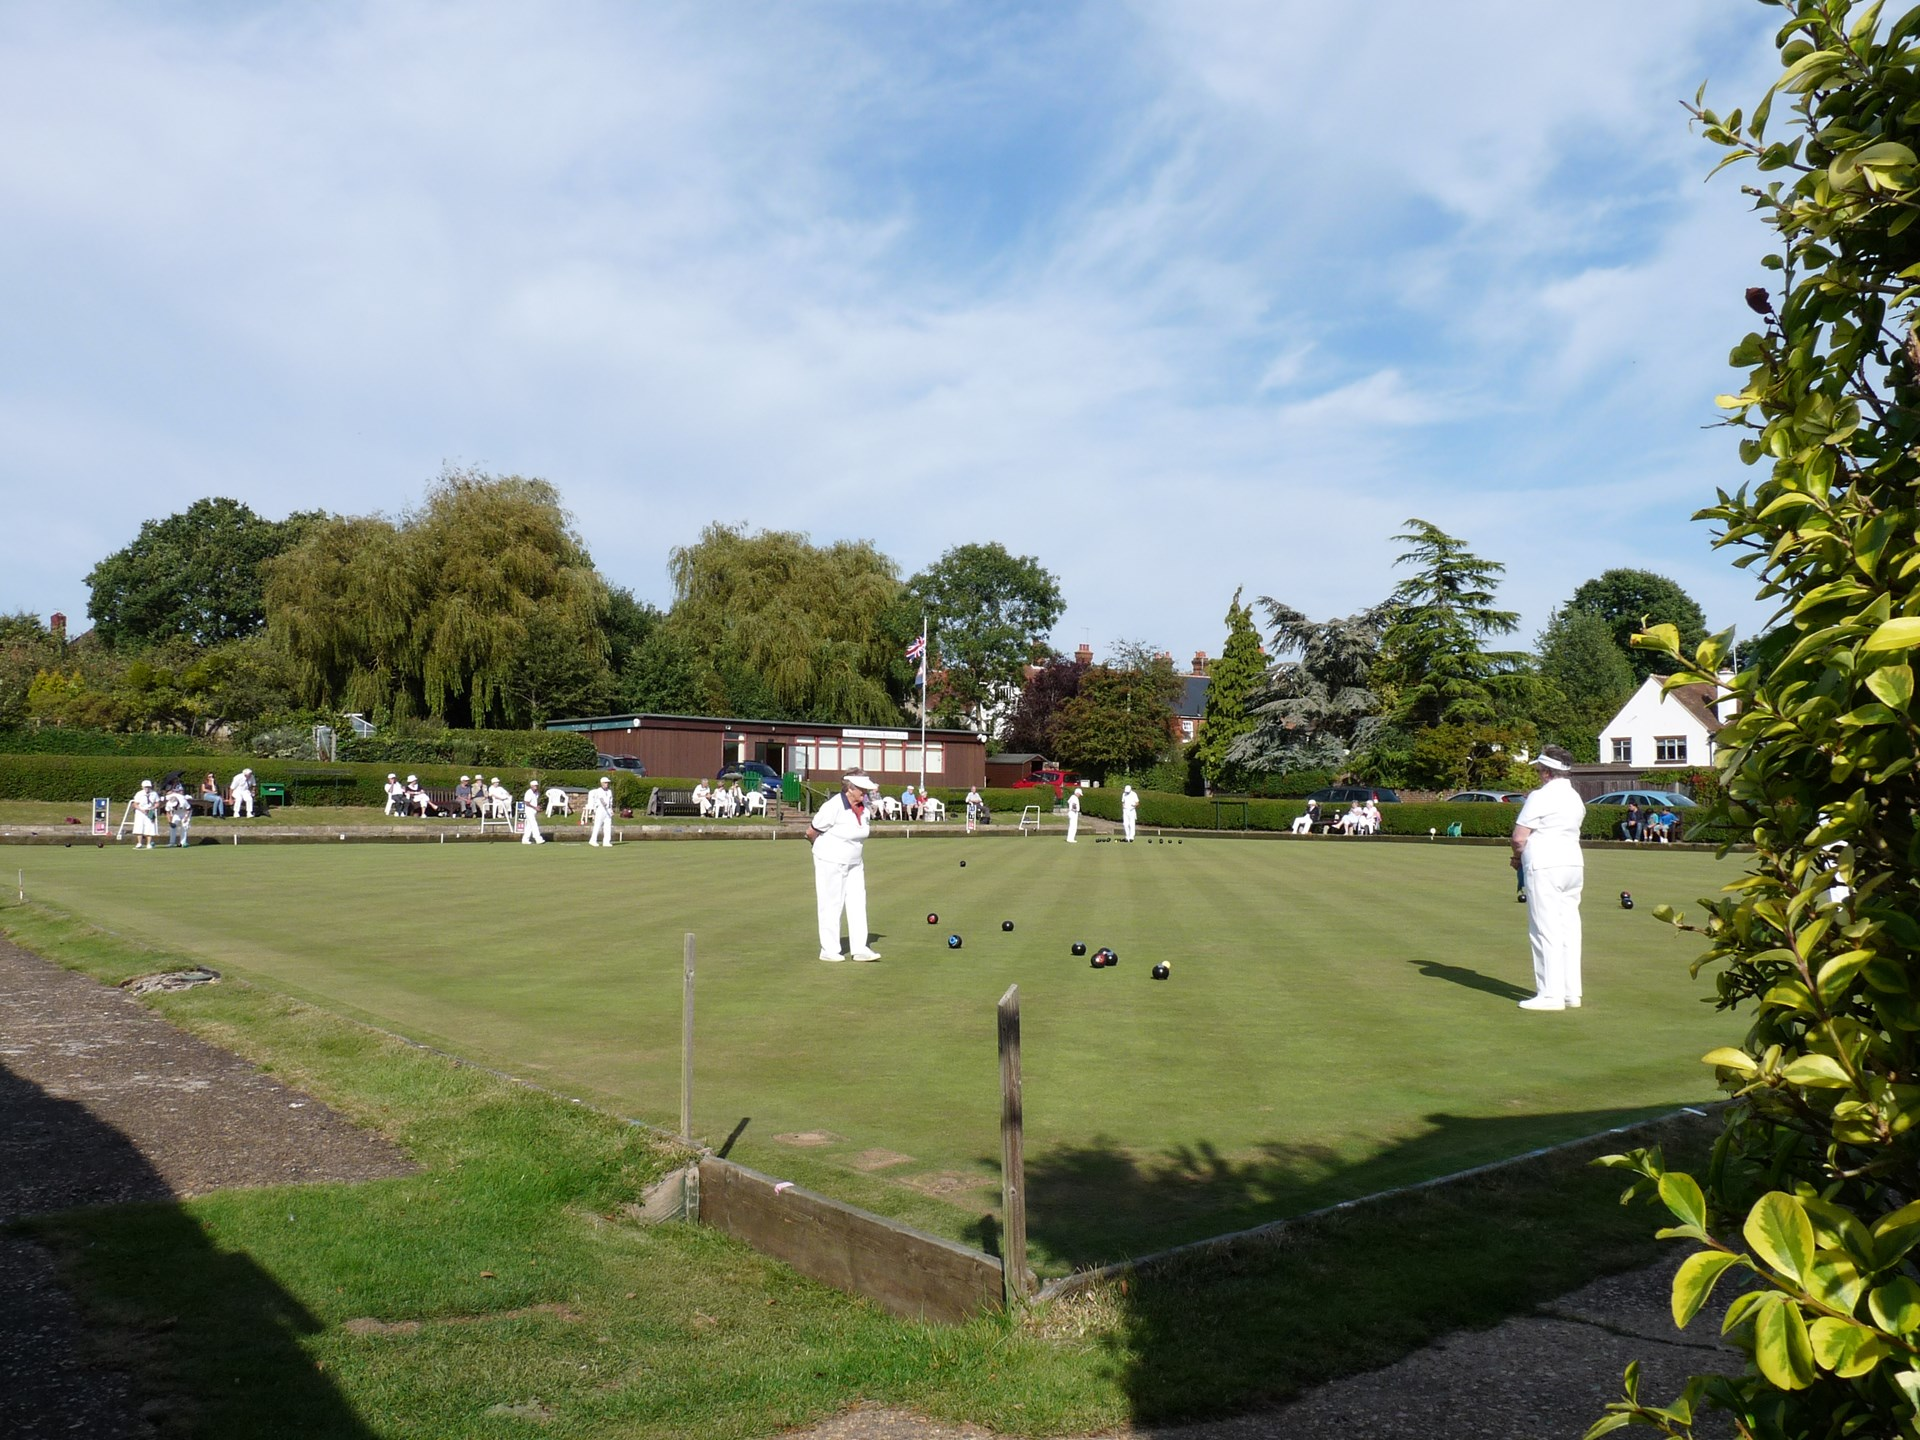 Aldershot Underwood Bowls Club About Us